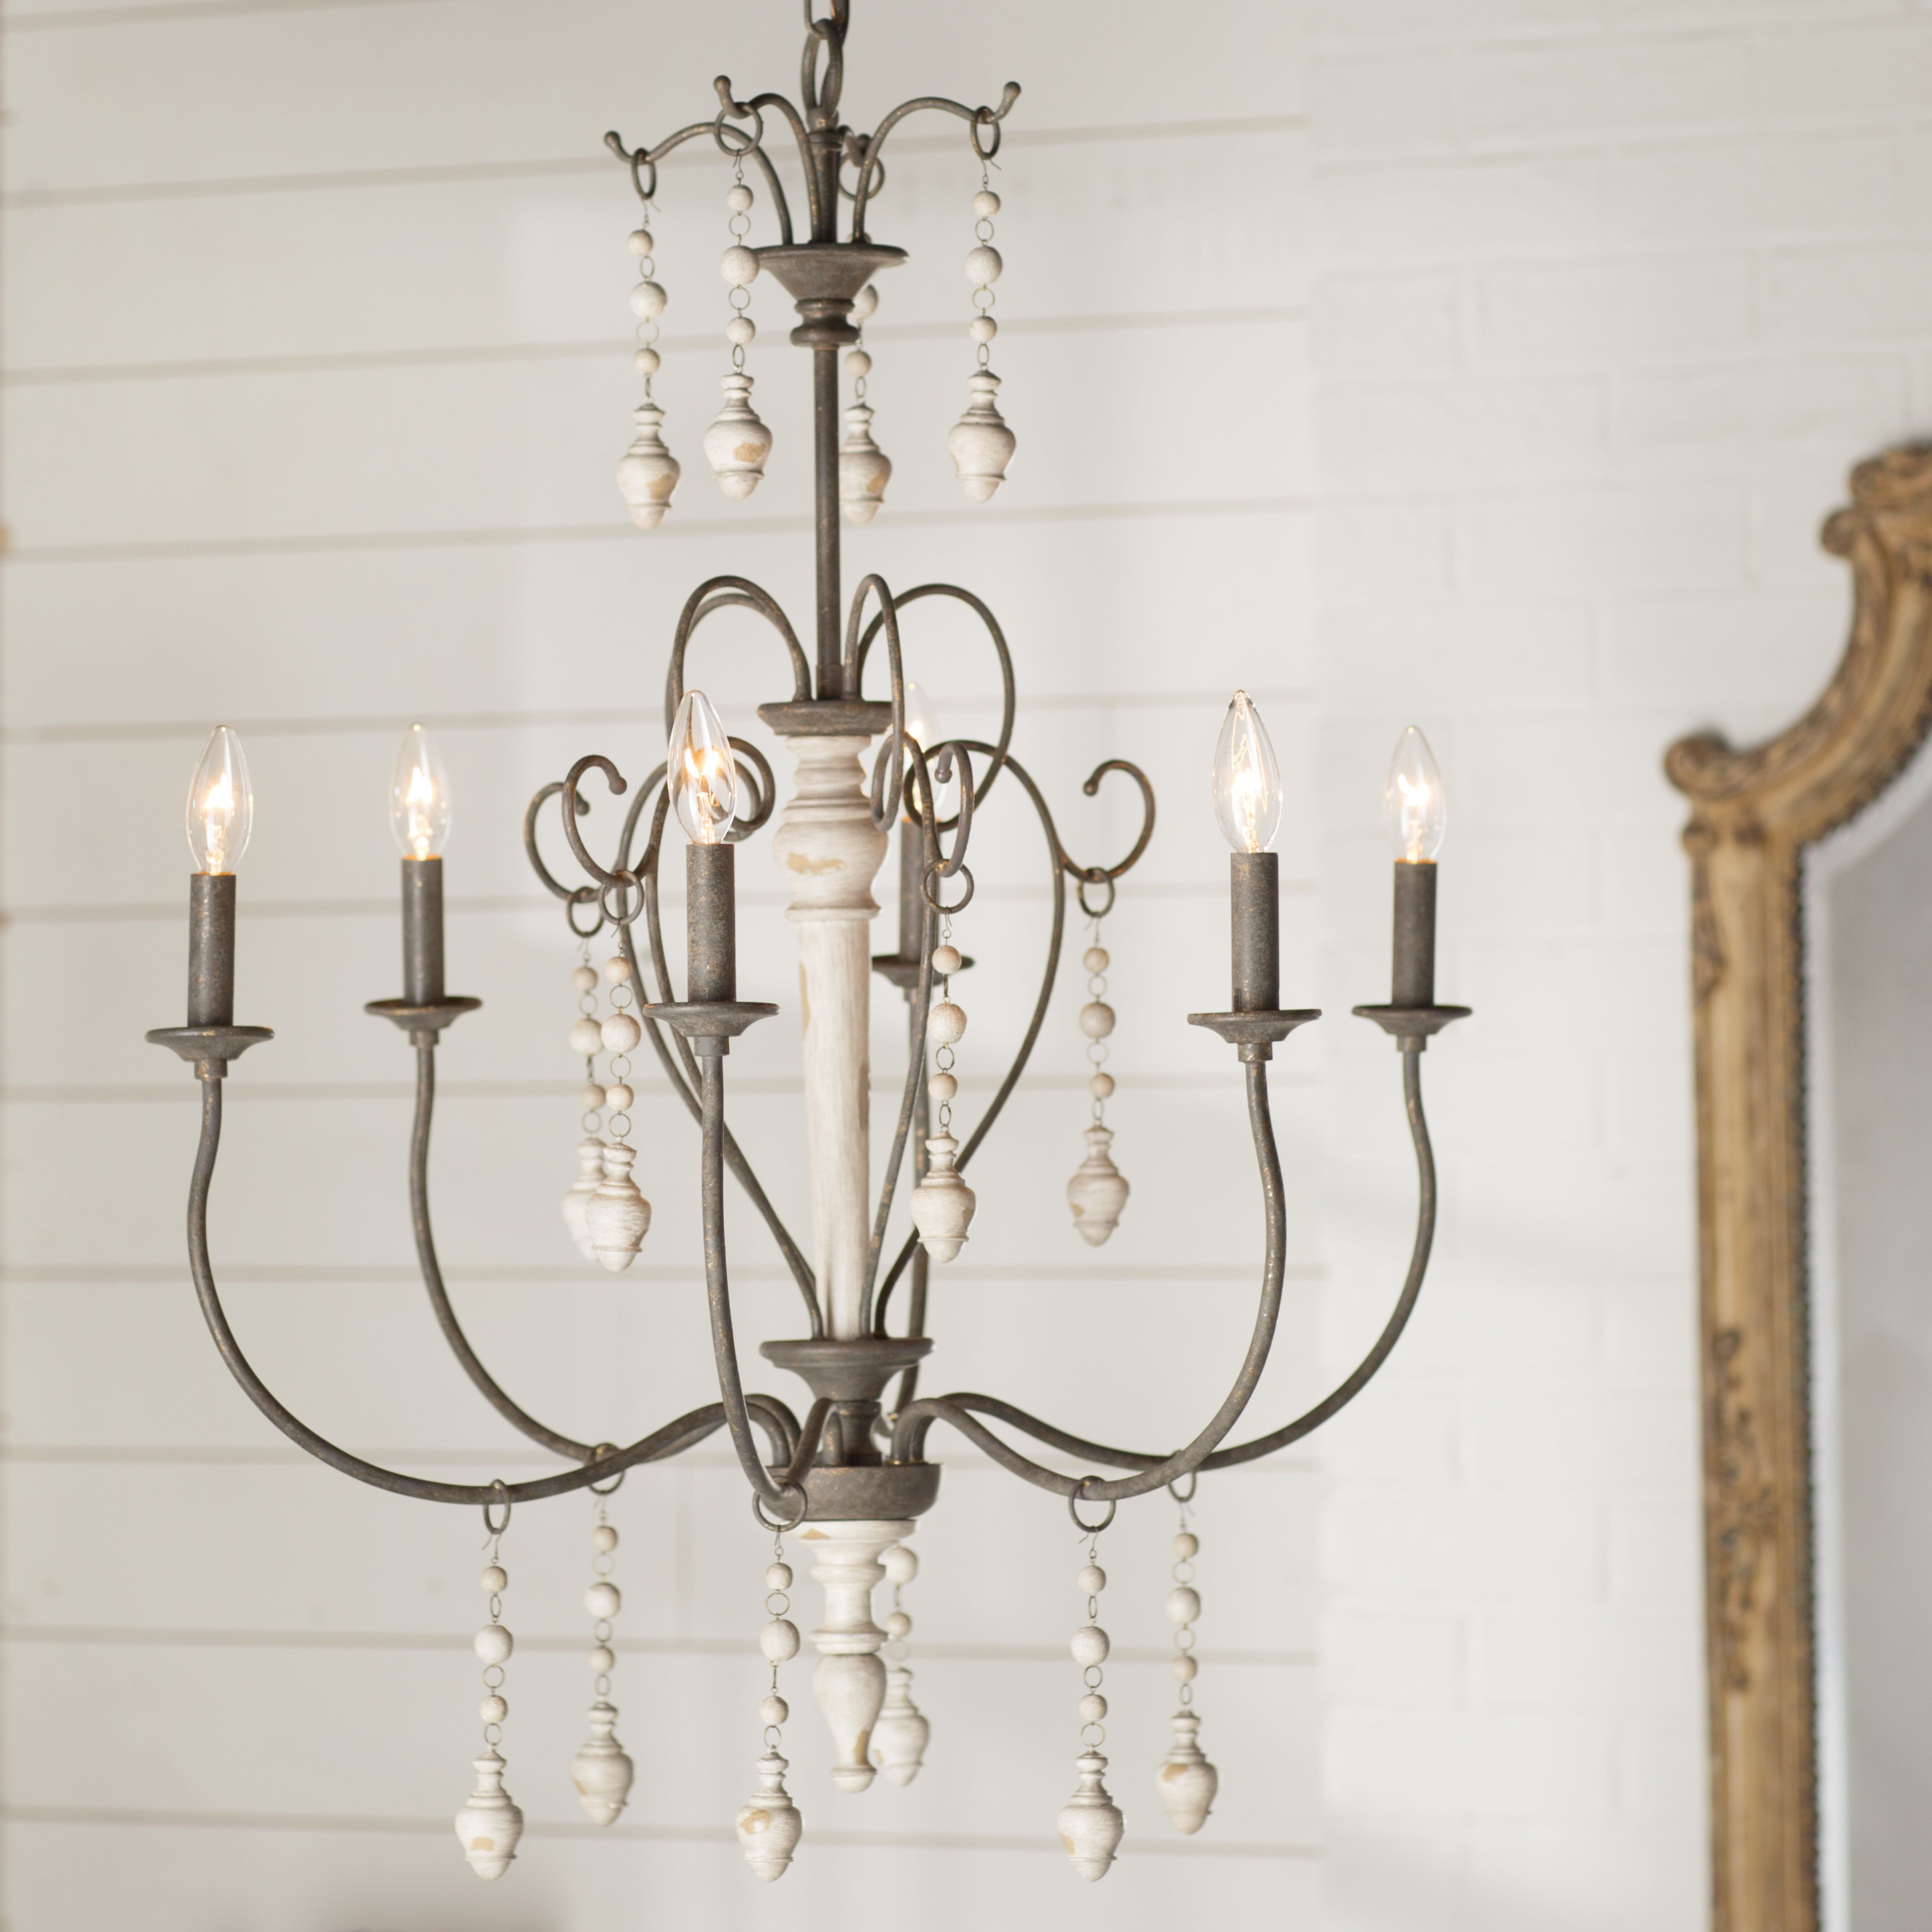 Bouchette Traditional 6-Light Candle Style Chandelier throughout Newest Corneau 5-Light Chandeliers